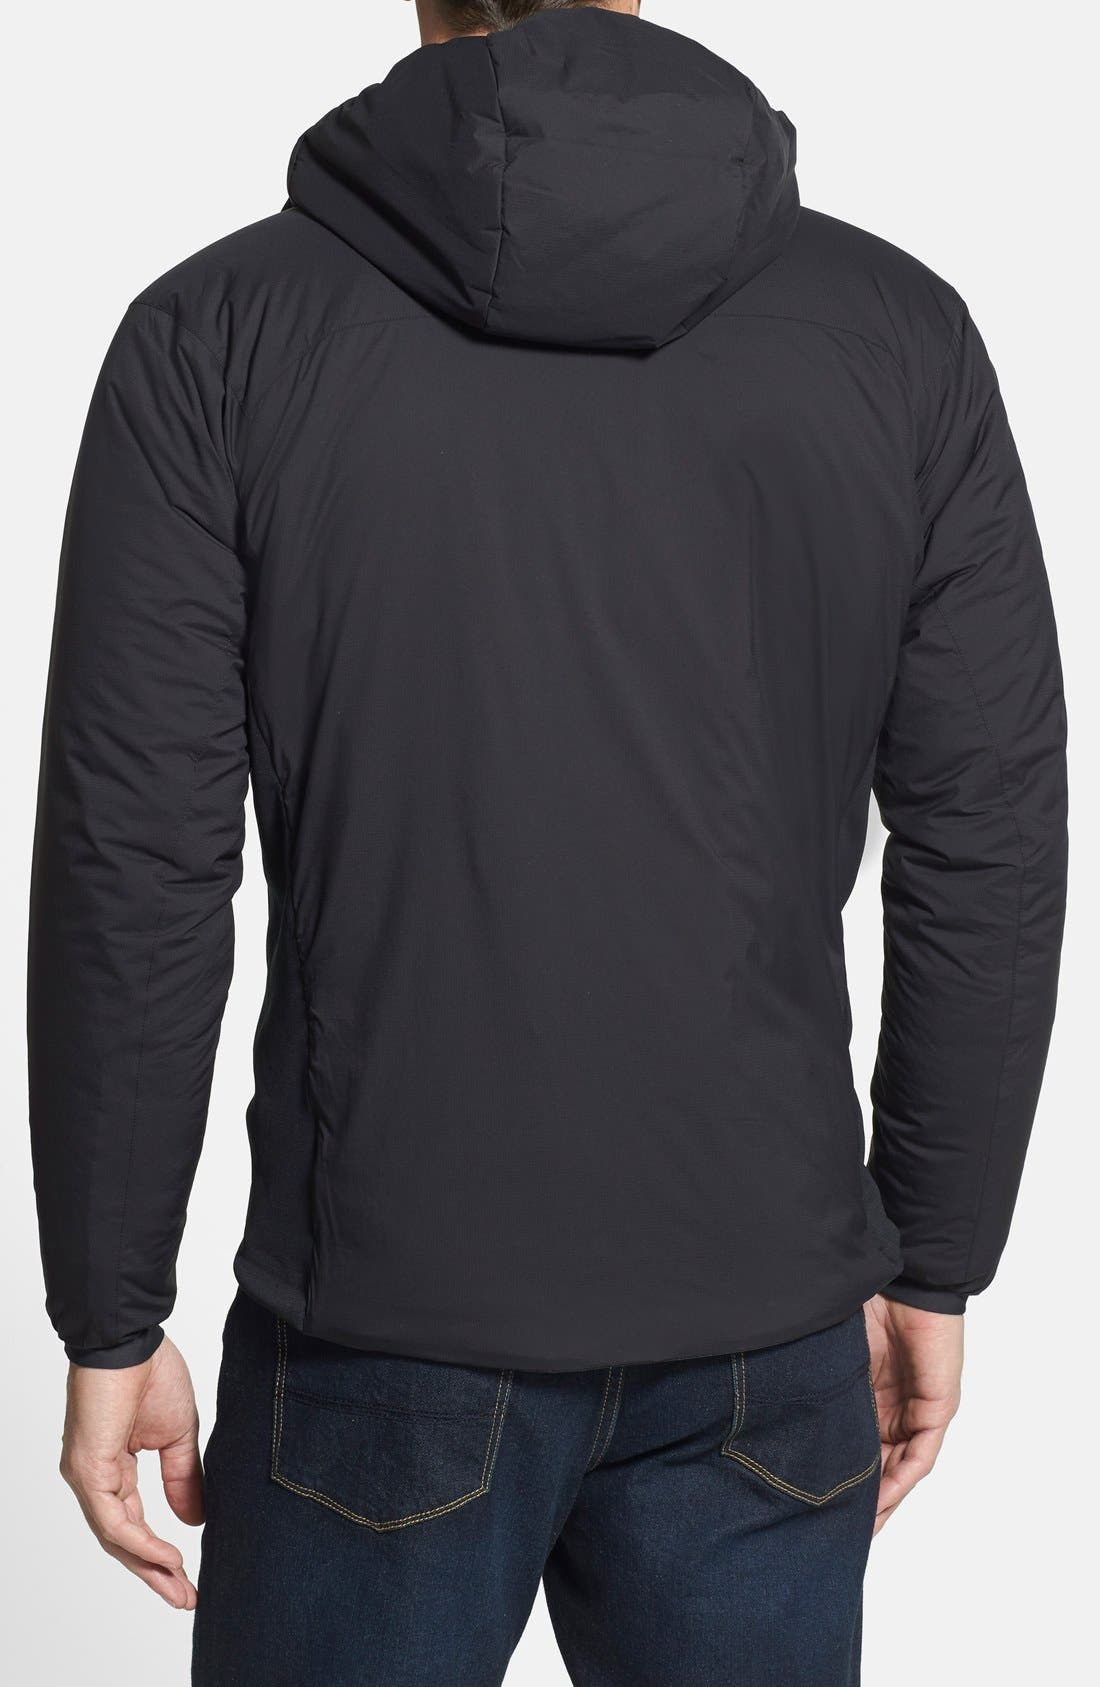 Alternate Image 2  - Arc'teryx 'Atom LT' Trim Fit Wind & Water Resistant Coreloft™ Hooded Jacket